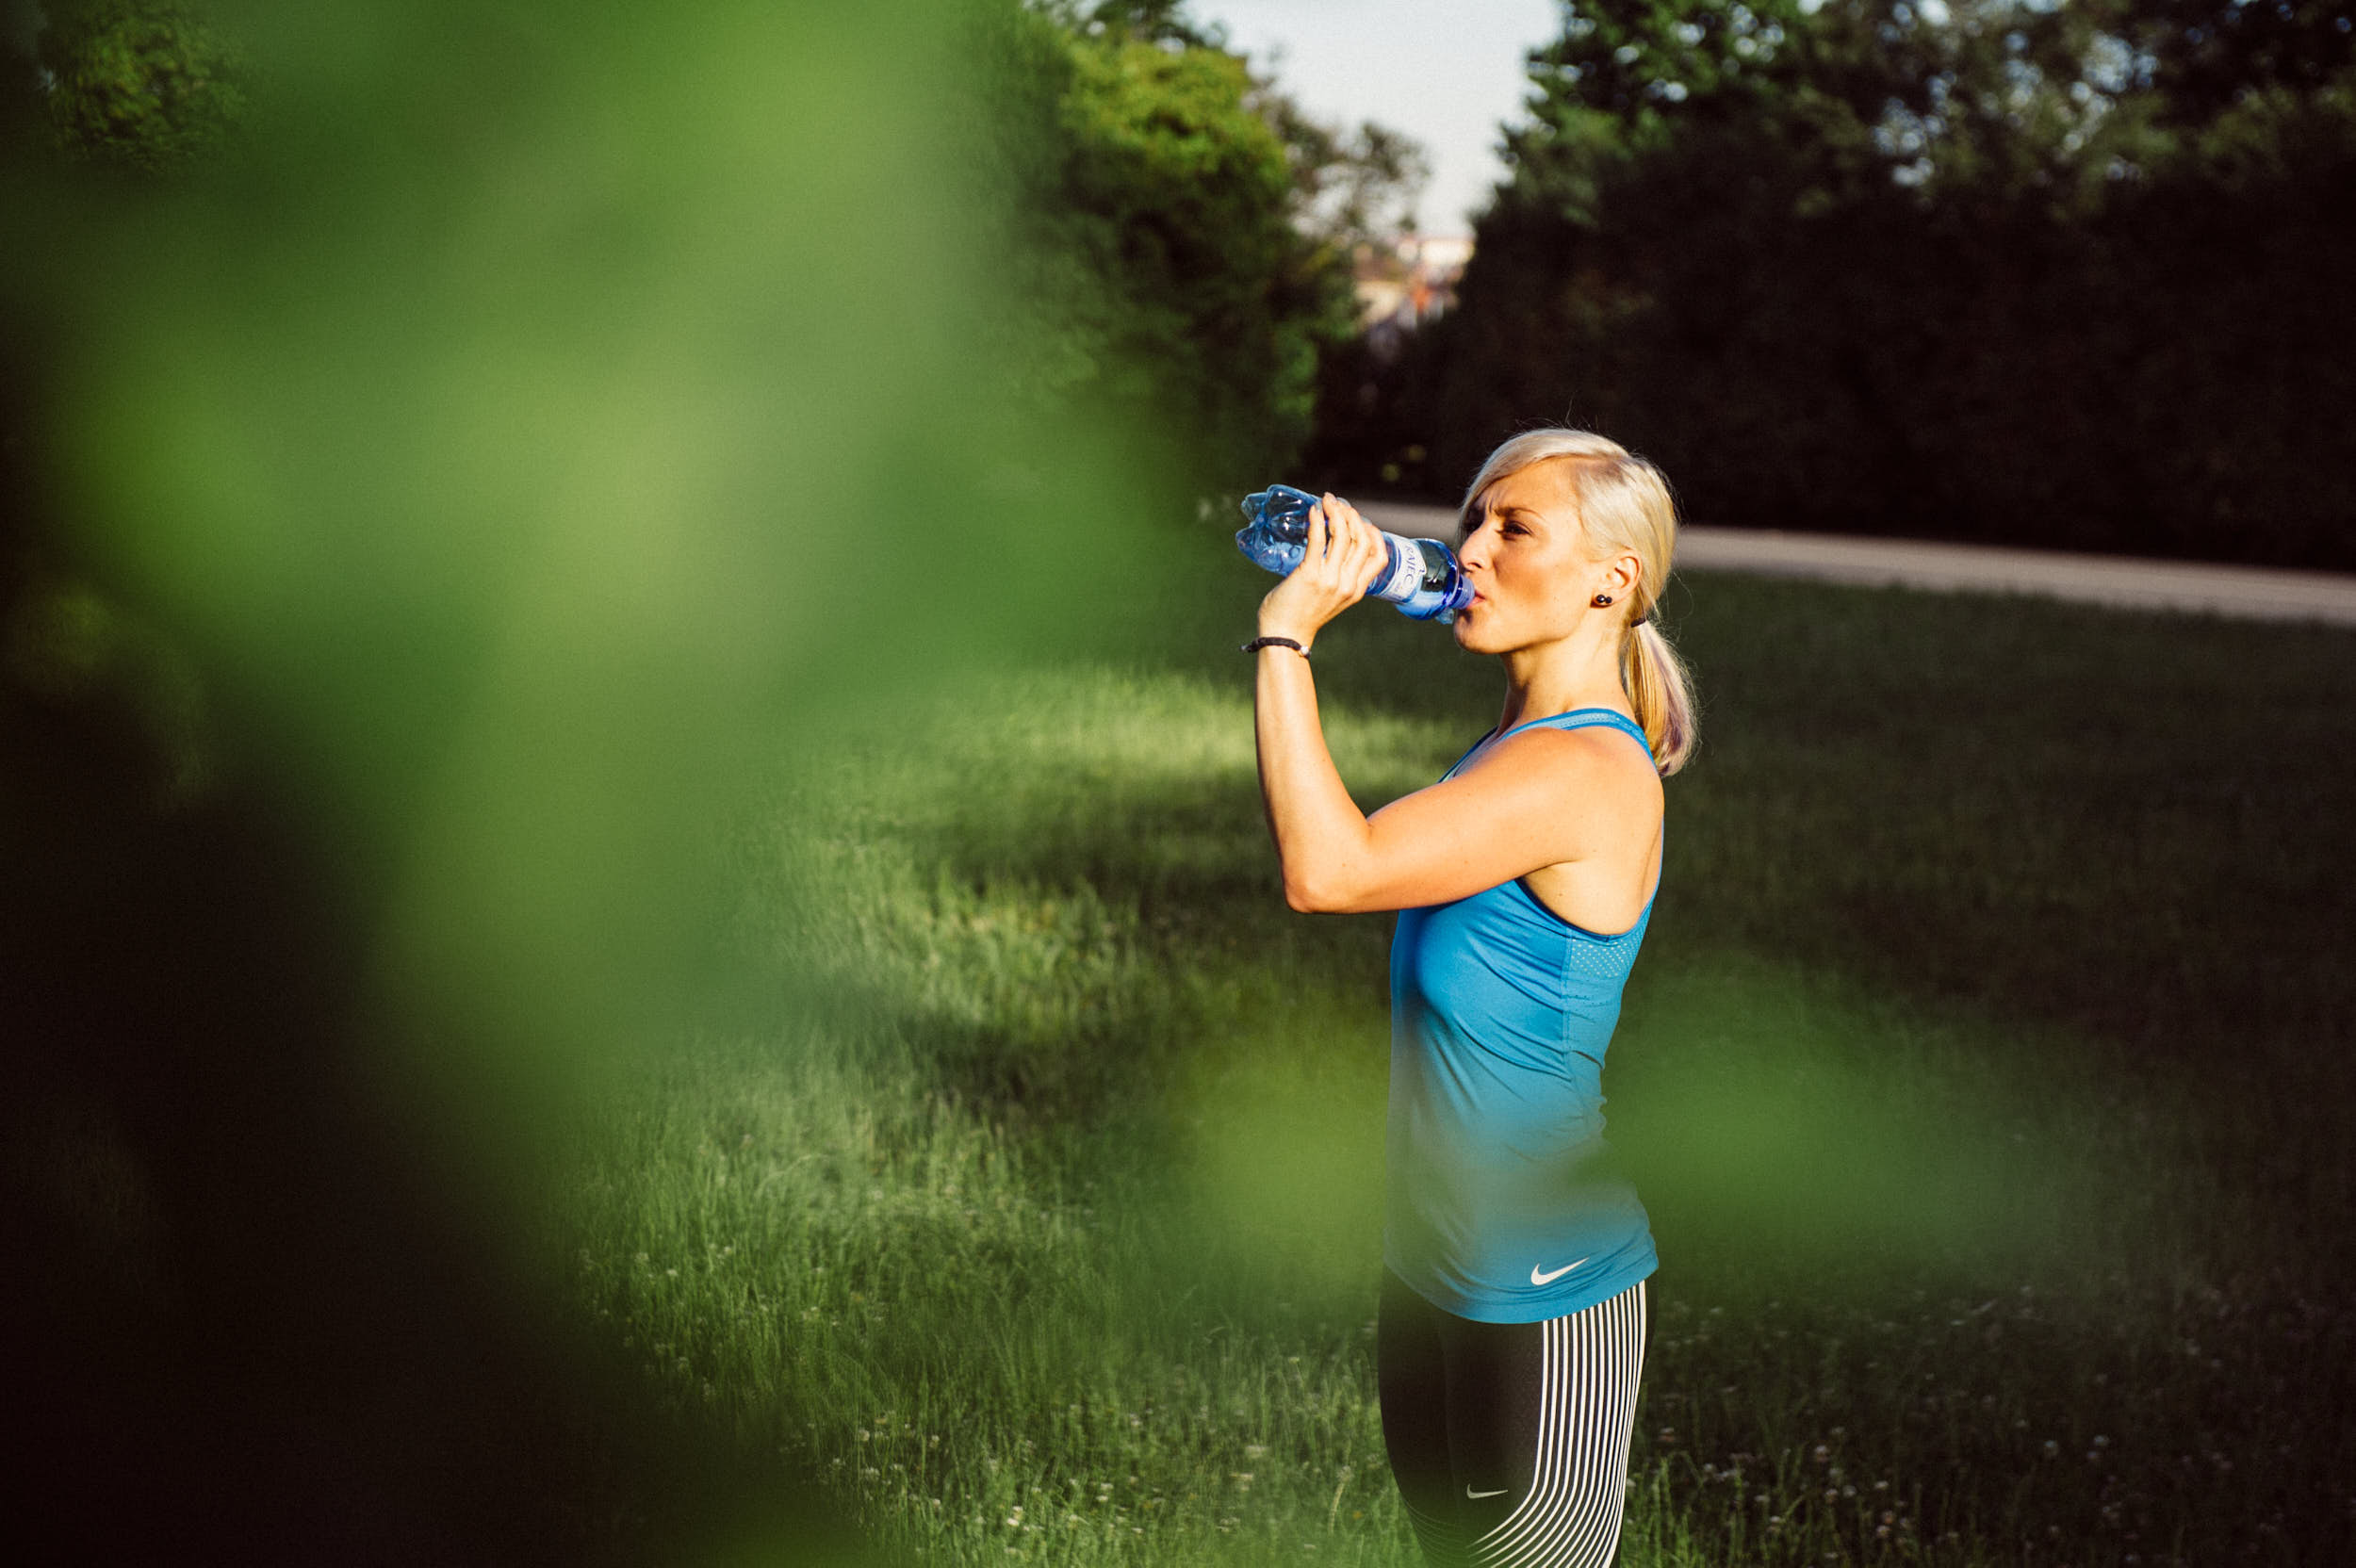 Active lifestyle photography: girl drinking from a water bottle after a workout.